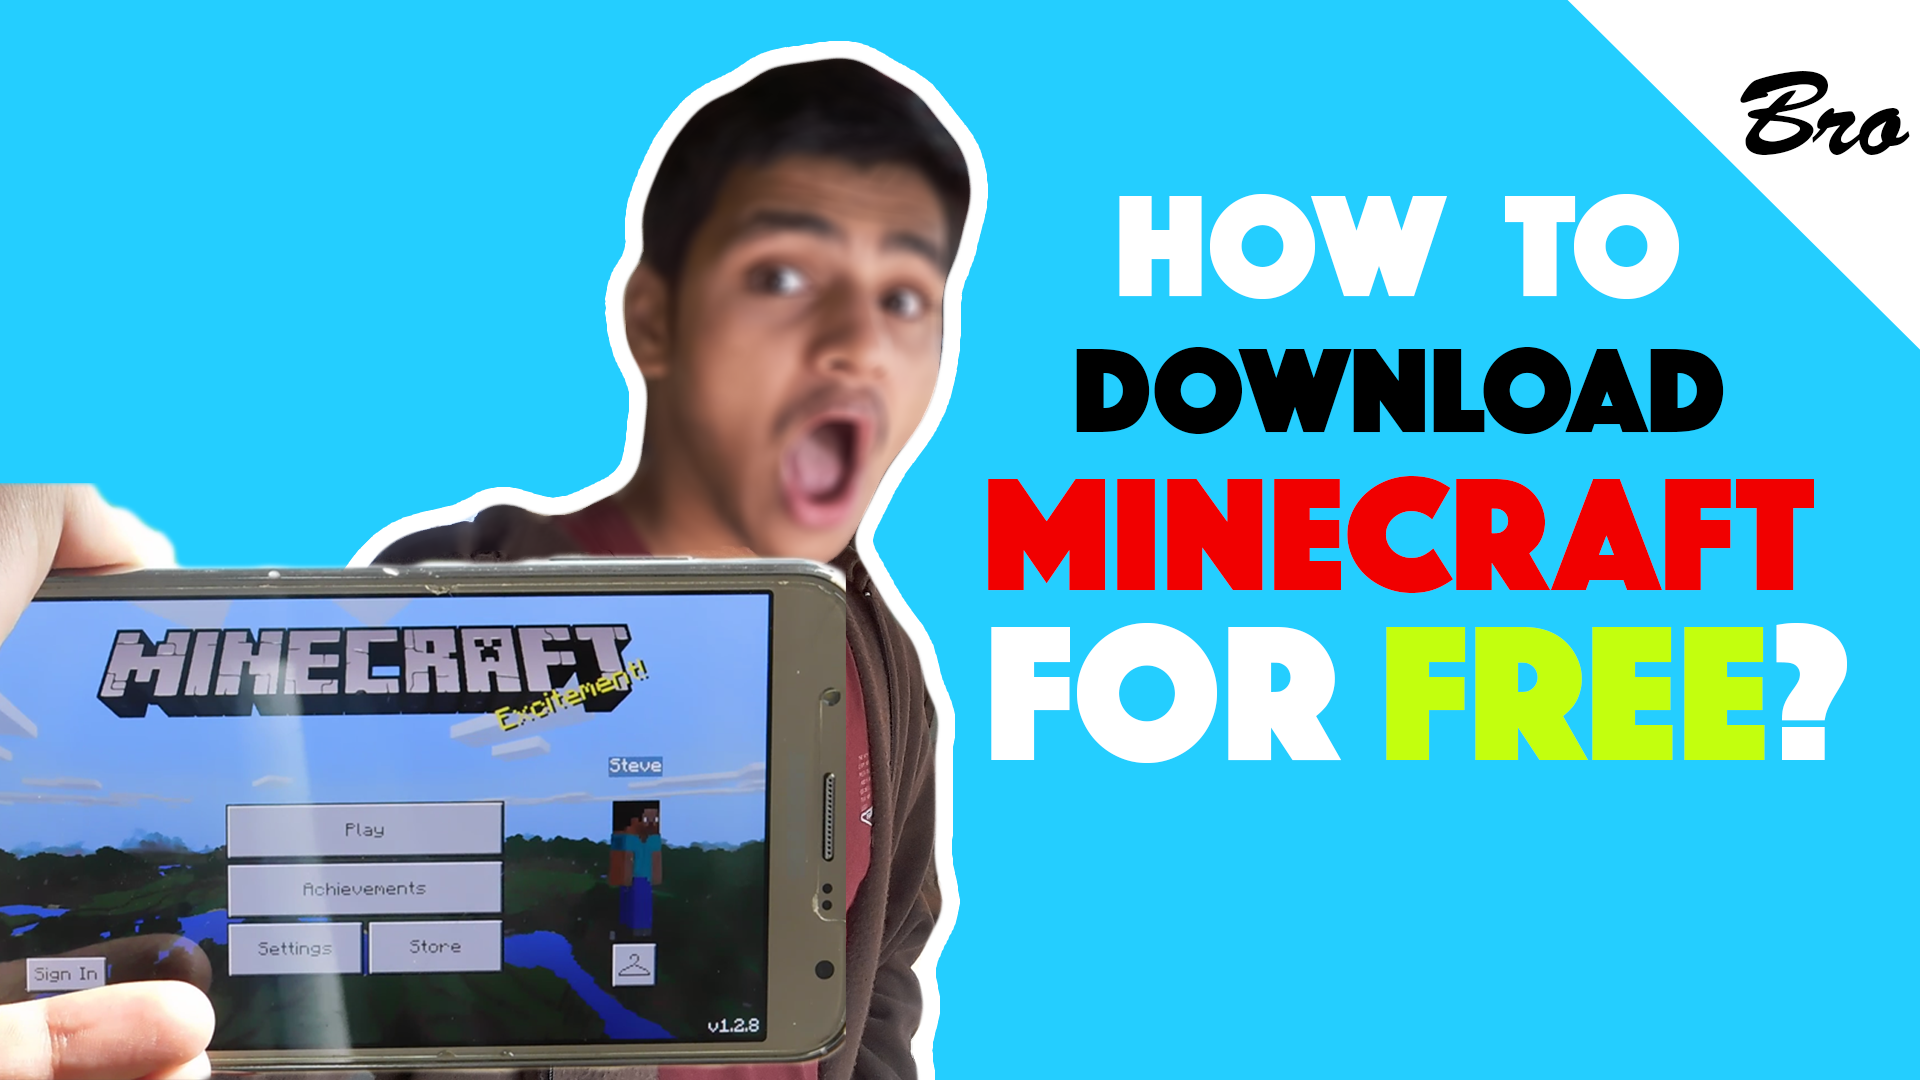 How to Download Minecraft on Any Android Device for FREE